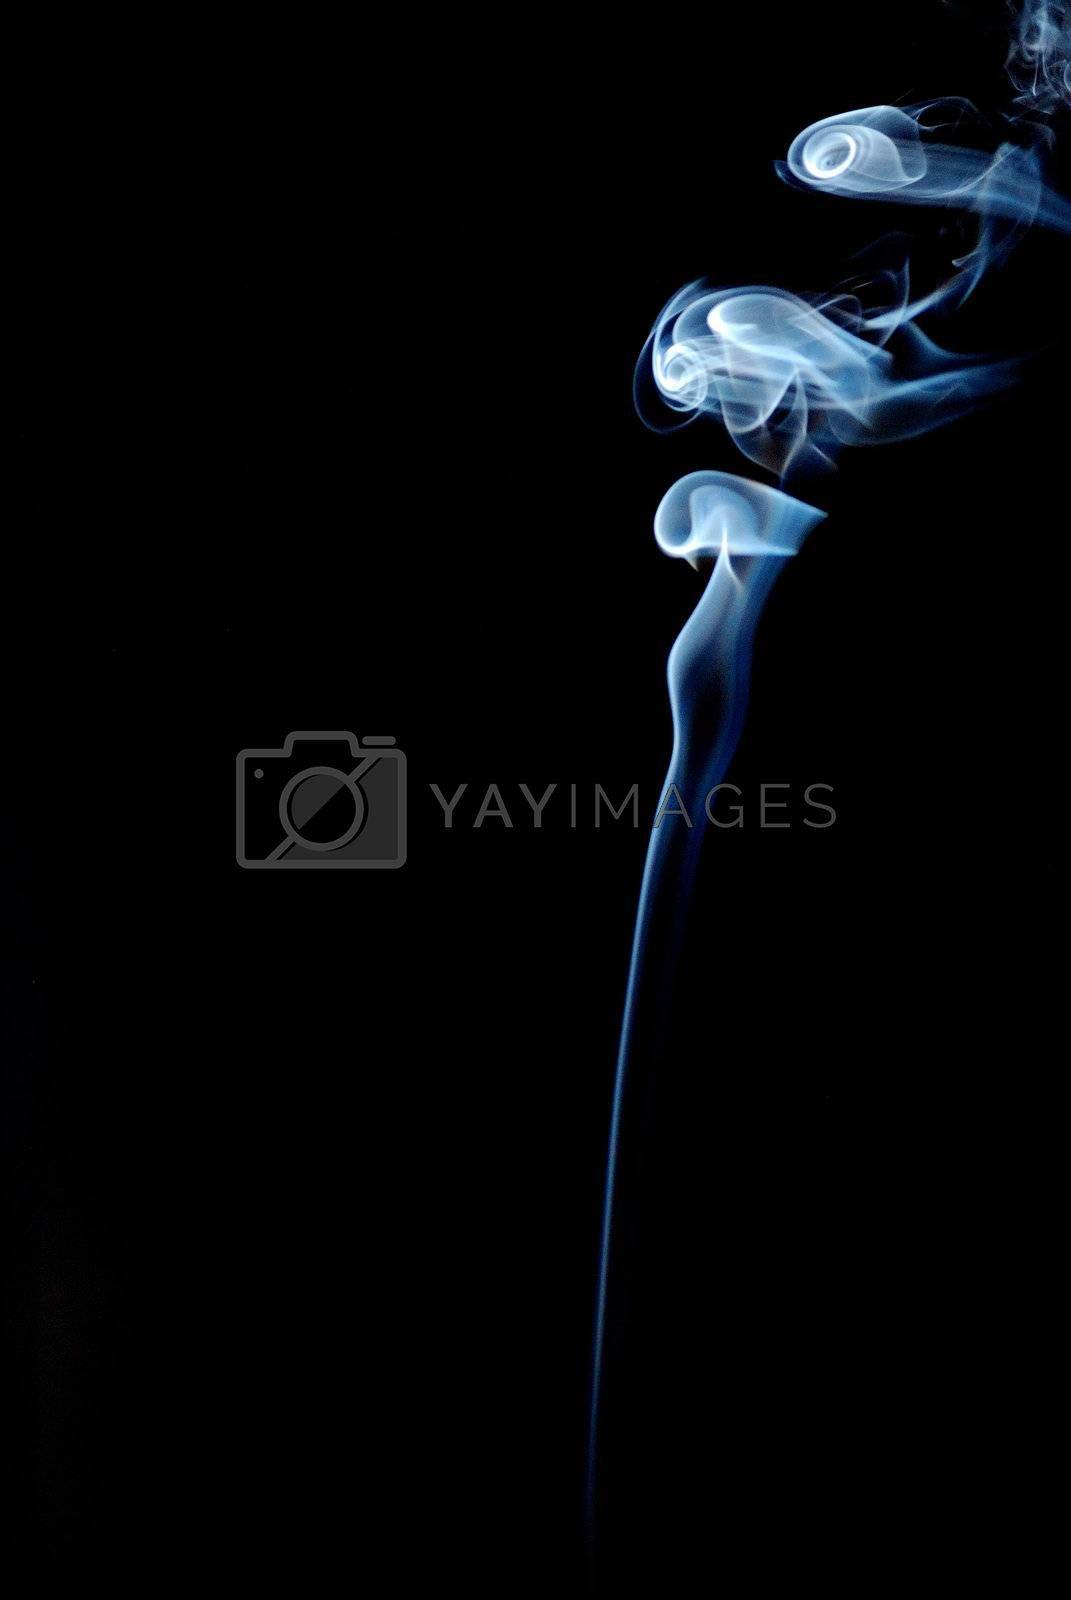 smoke heavily swirled right with black background